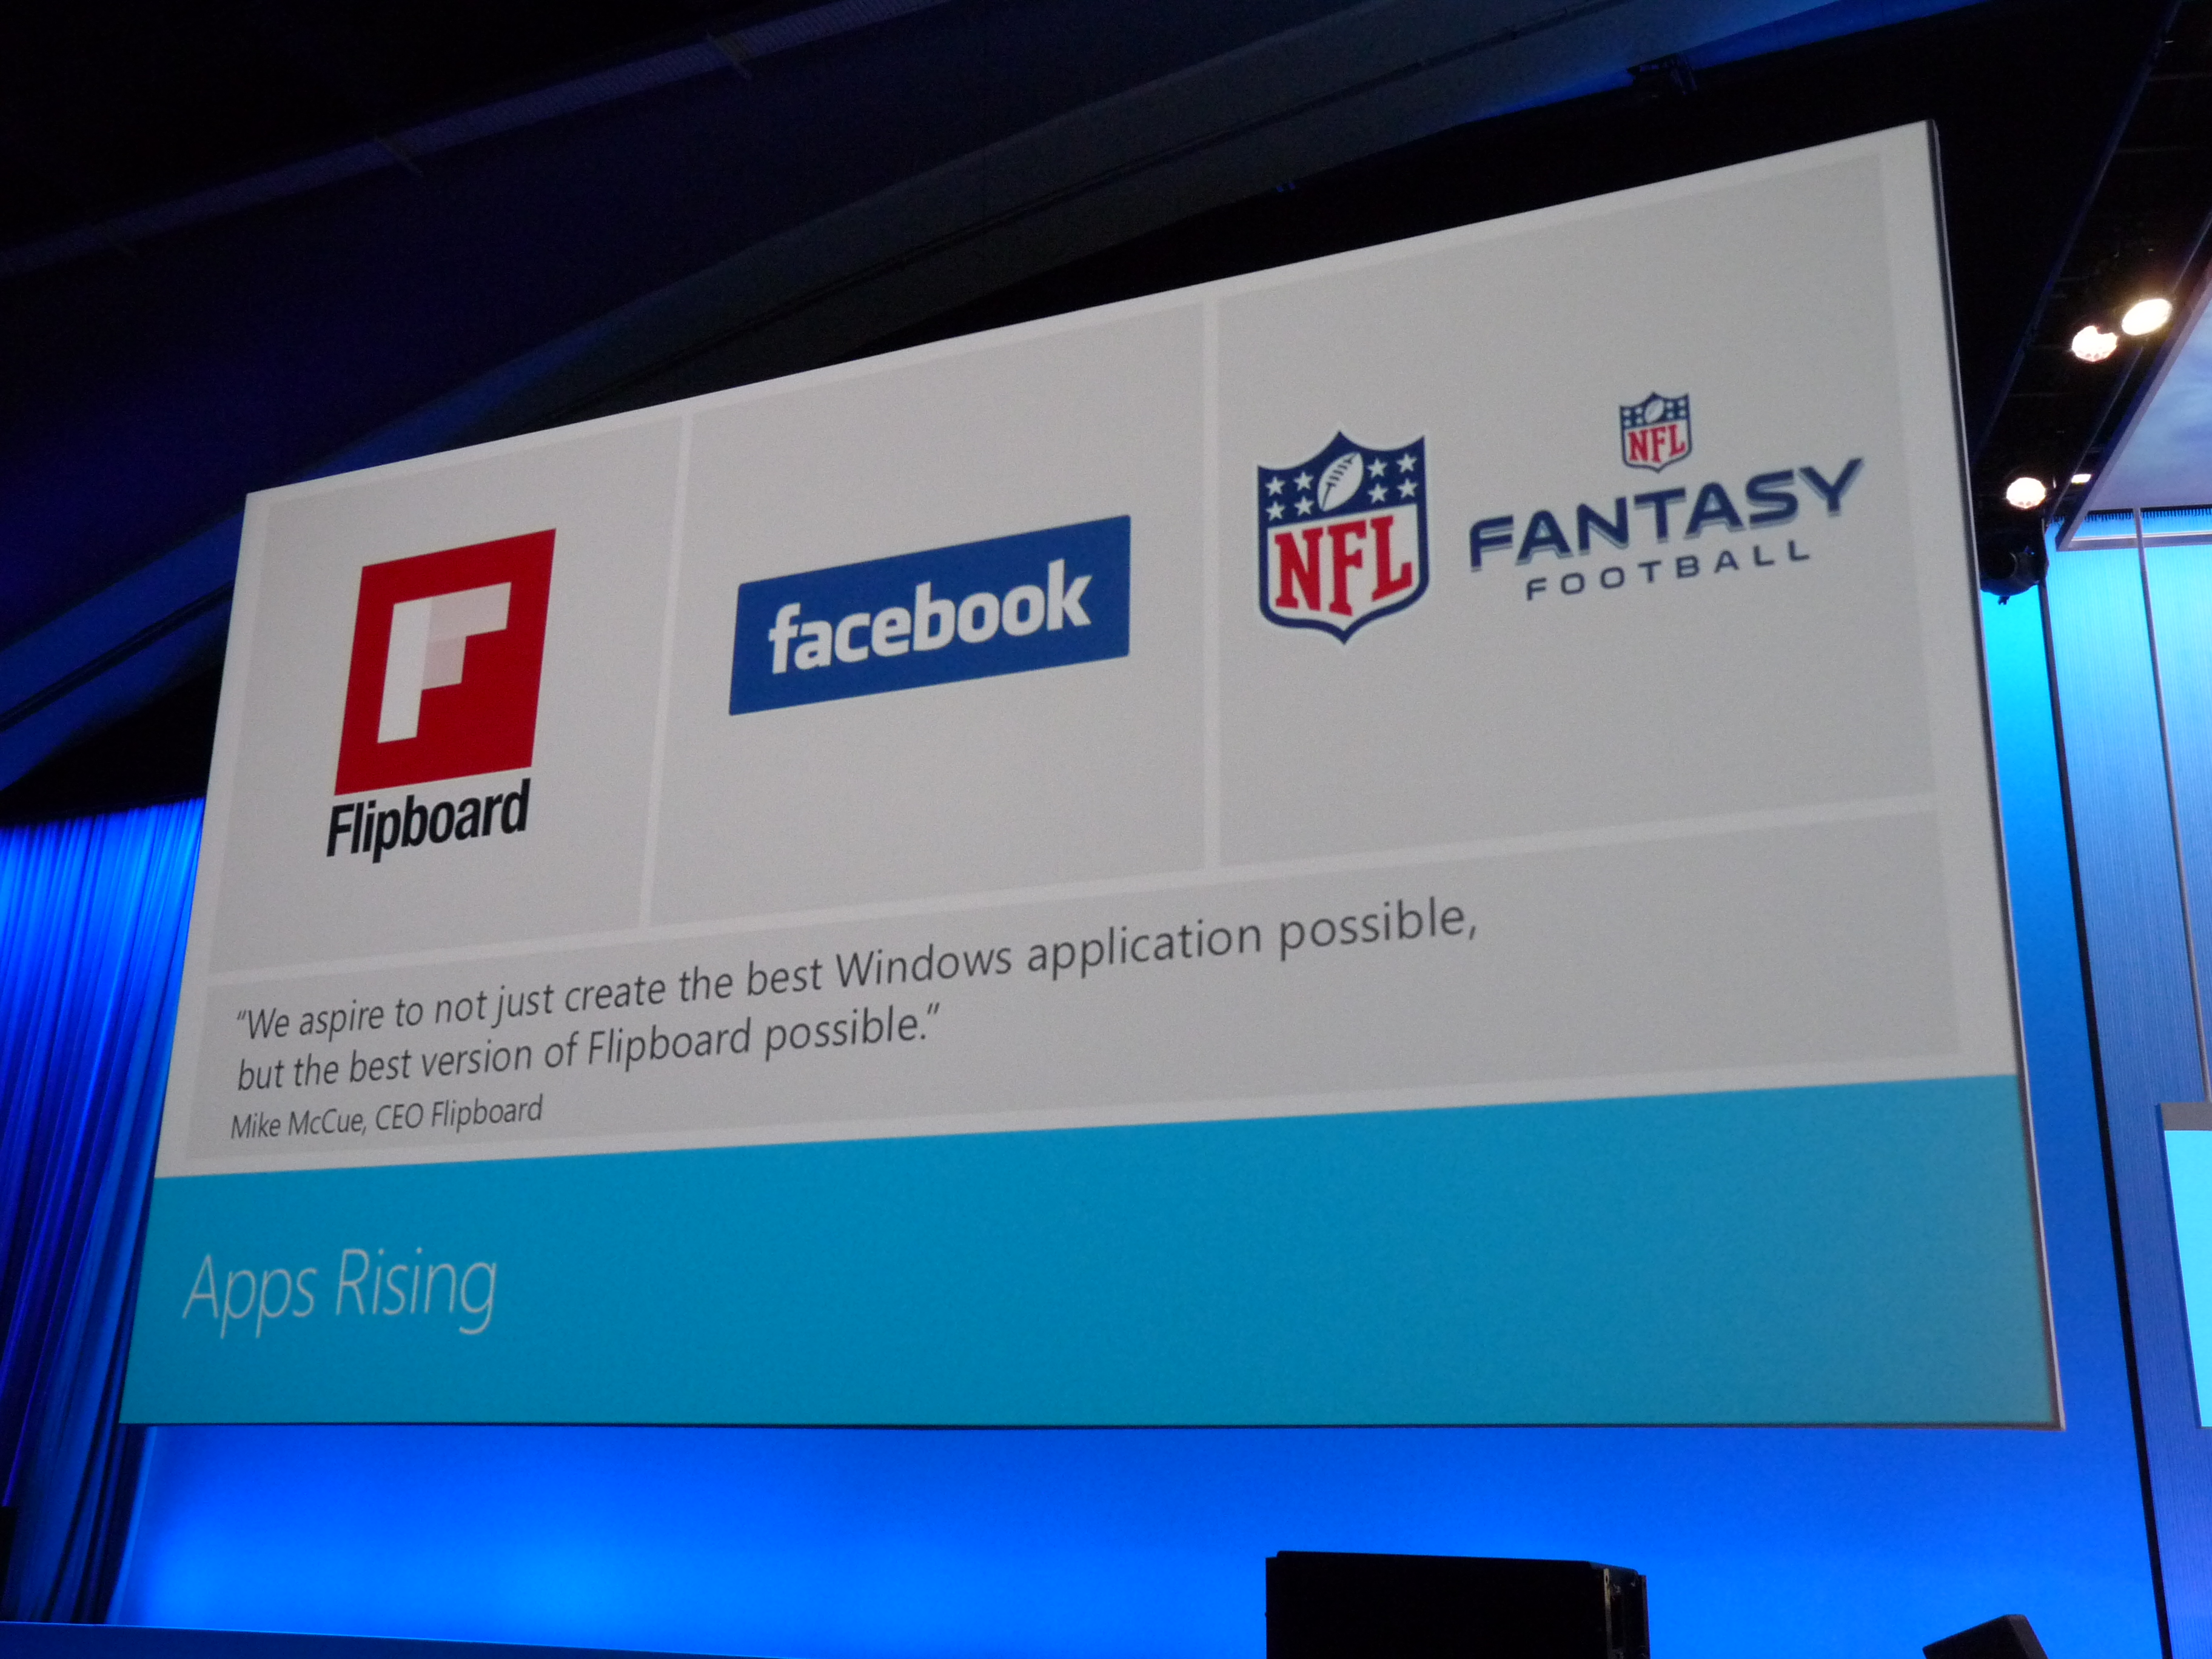 Official Facebook, Flipboard, And NFL Apps Are Coming To